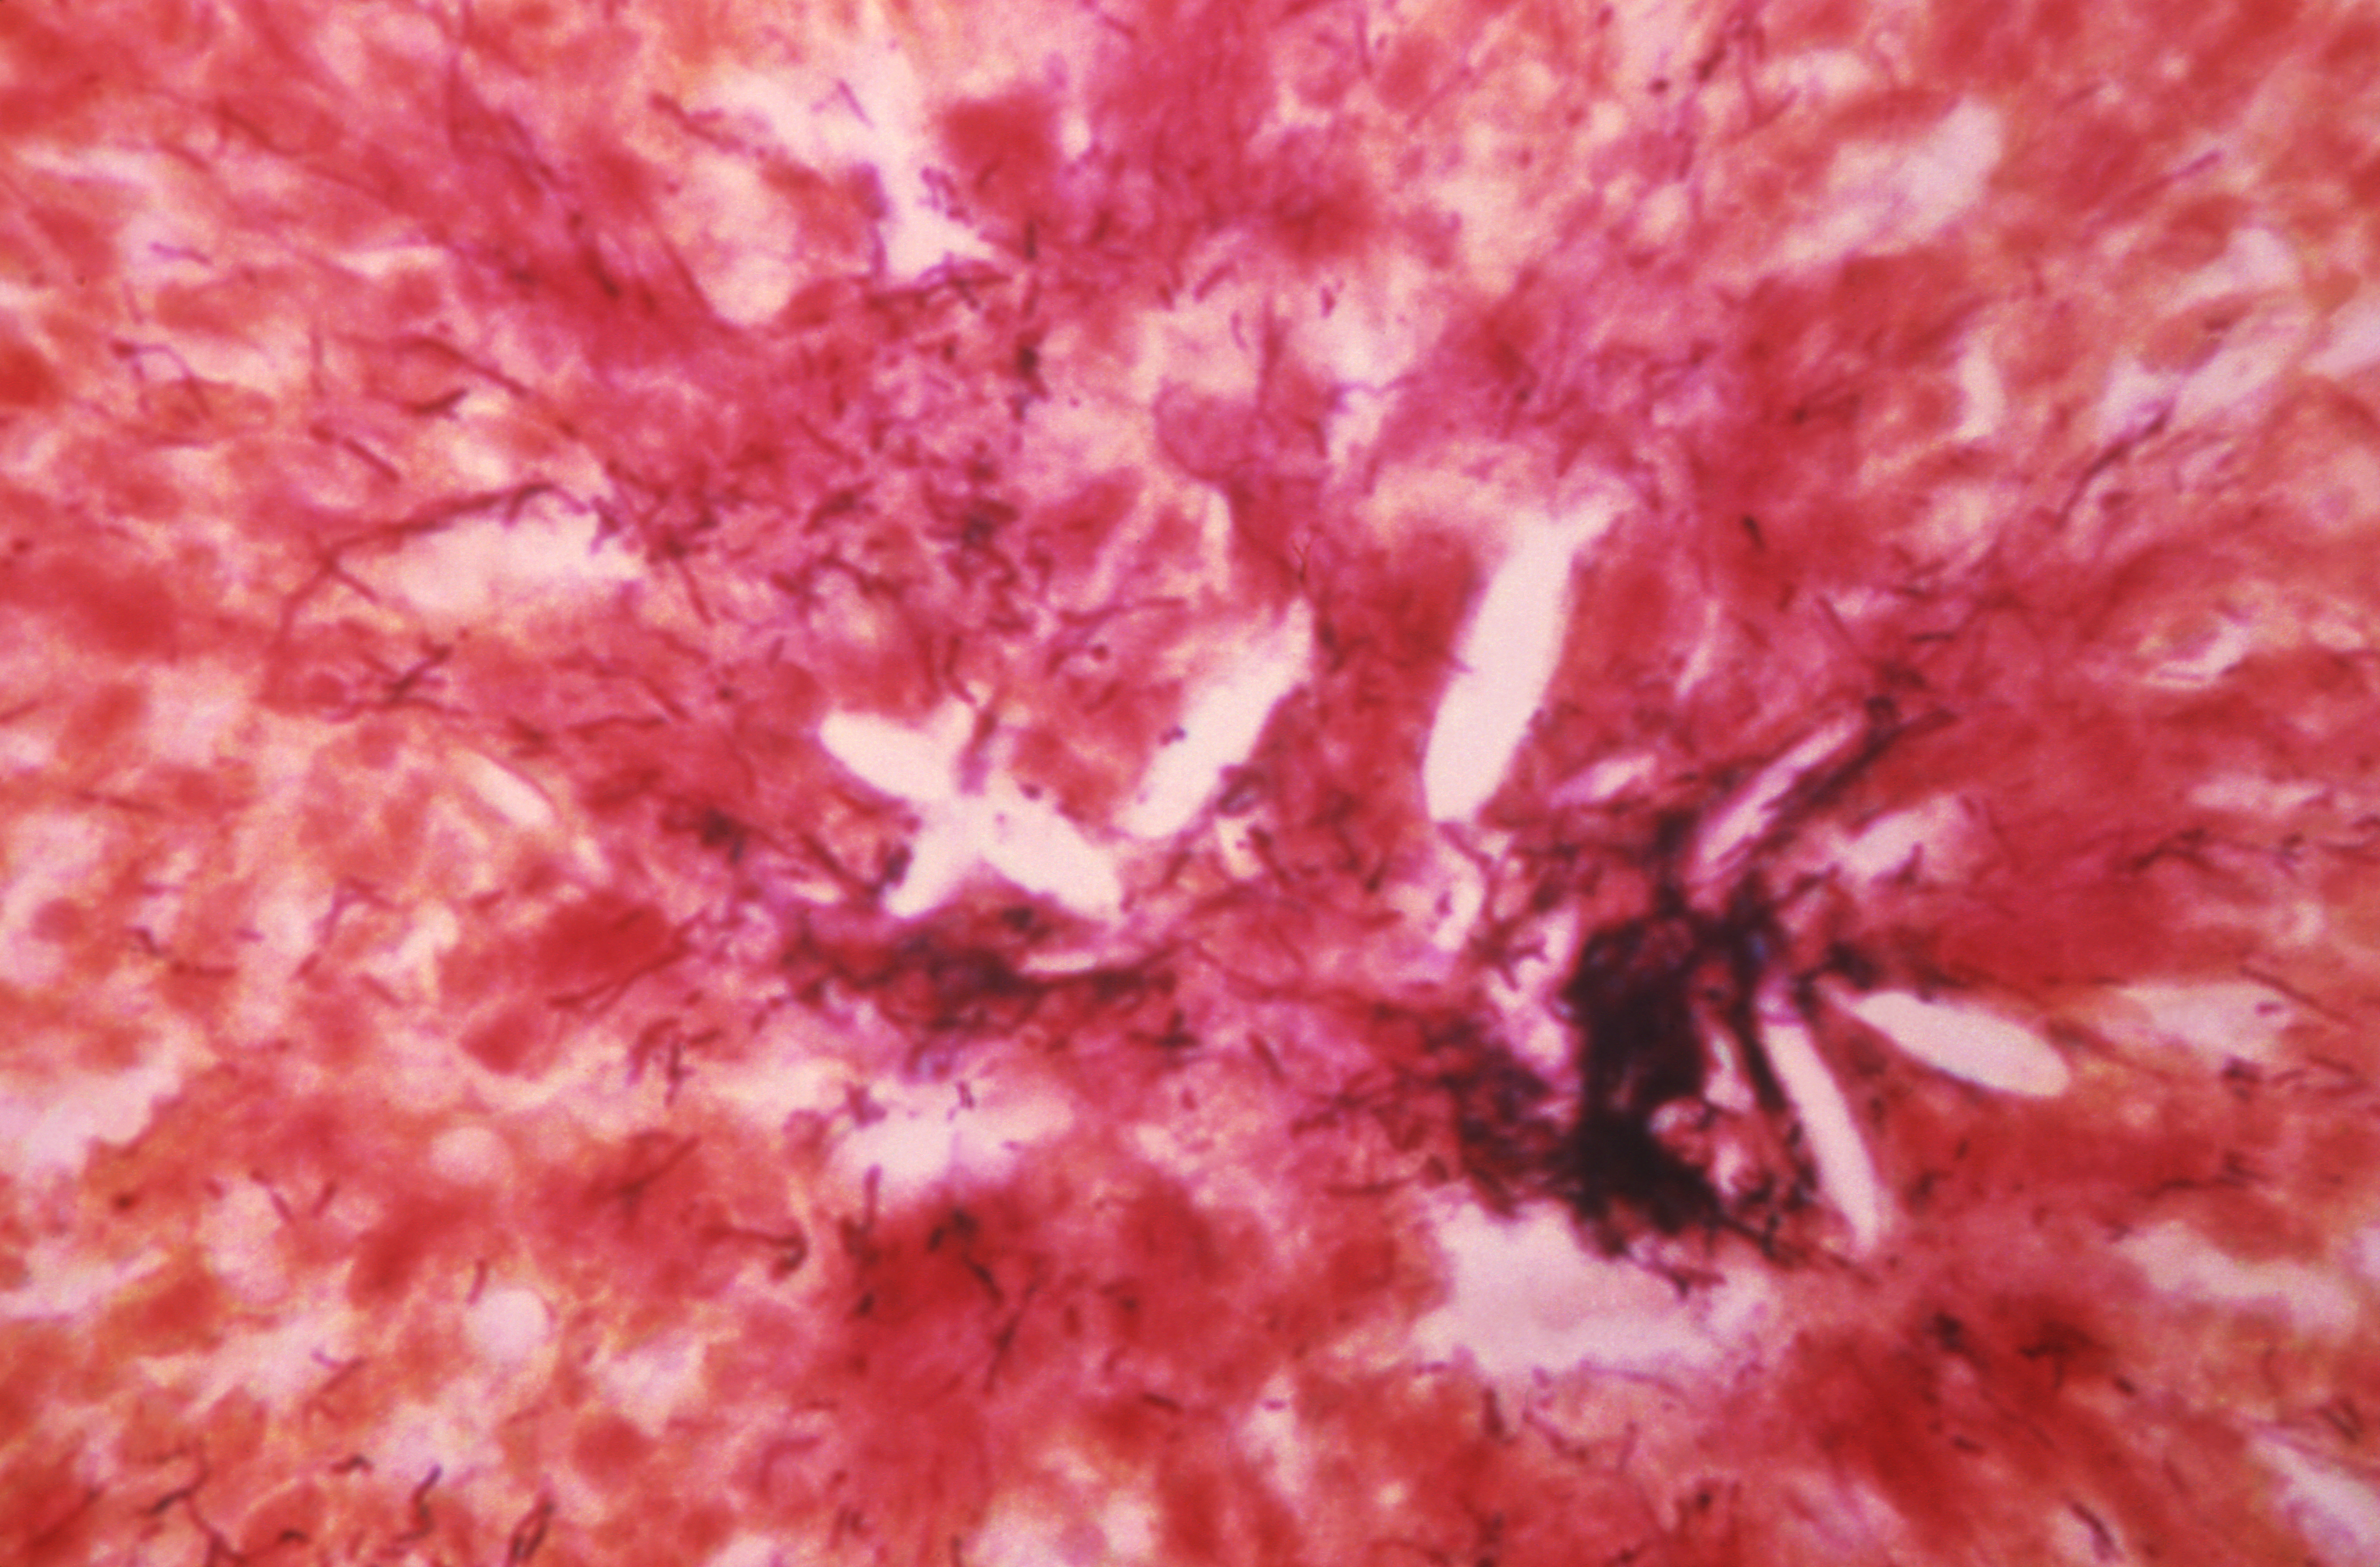 Under a magnification of 200X, this photomicrograph of a Gram-stained brain tissue specimen, revealed the presence of a chronic inflammatory sulfur granule in a case of actinomycosis, caused by a Gram-positive, fungus-like aerobic bacterium of the genus, Actinomyces.